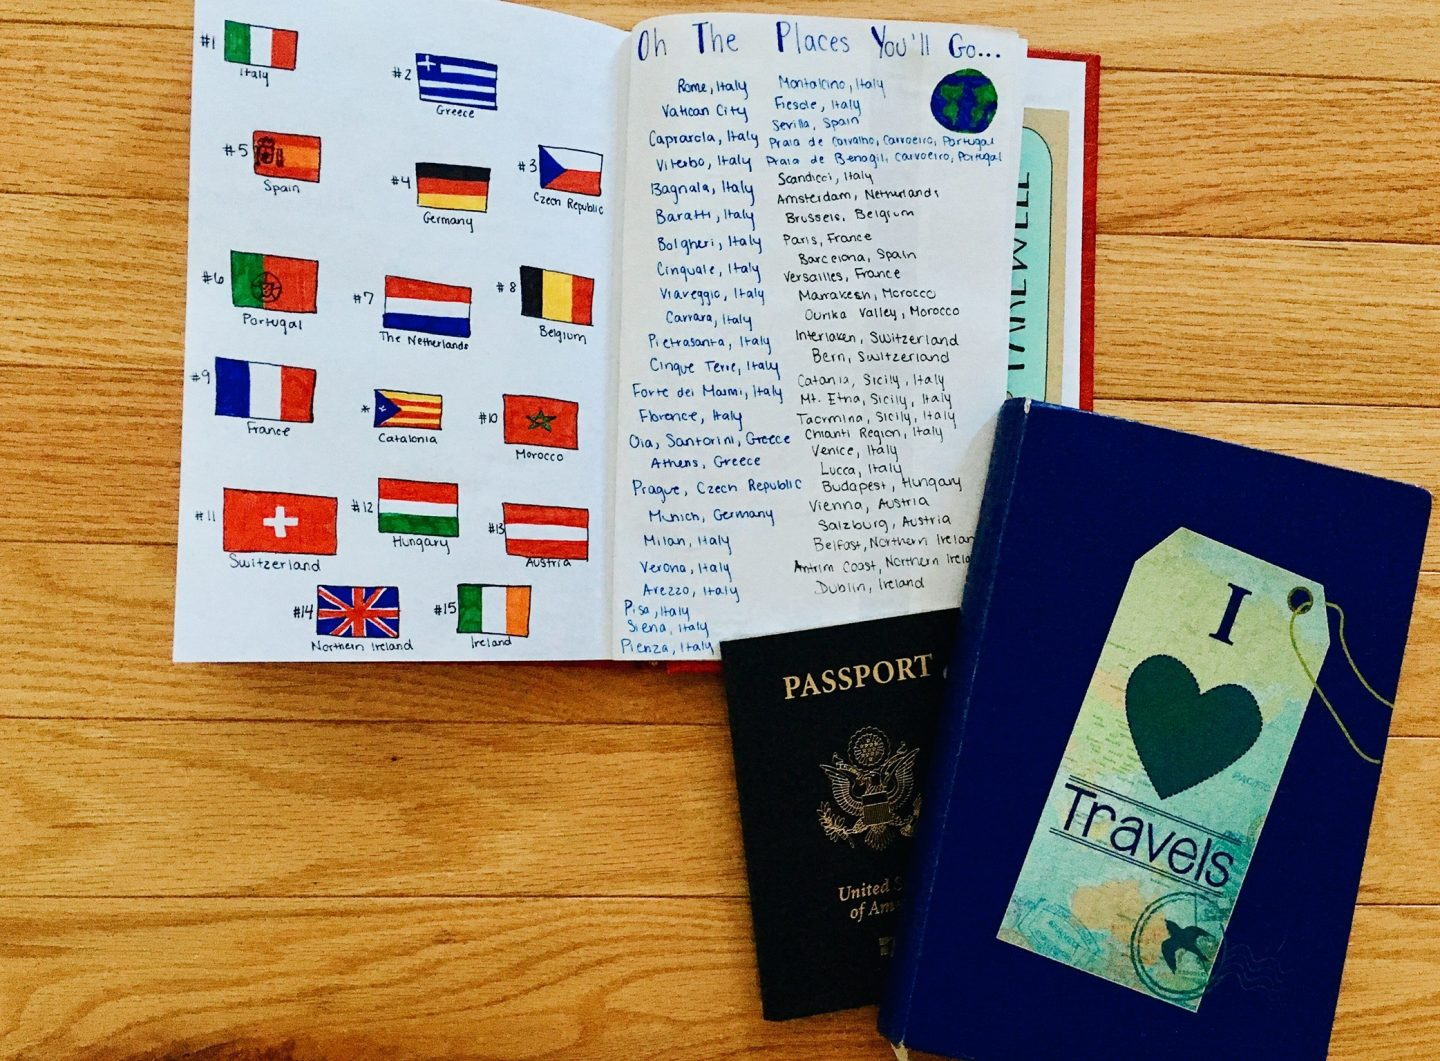 Keeping track of where I've been in my travel journal